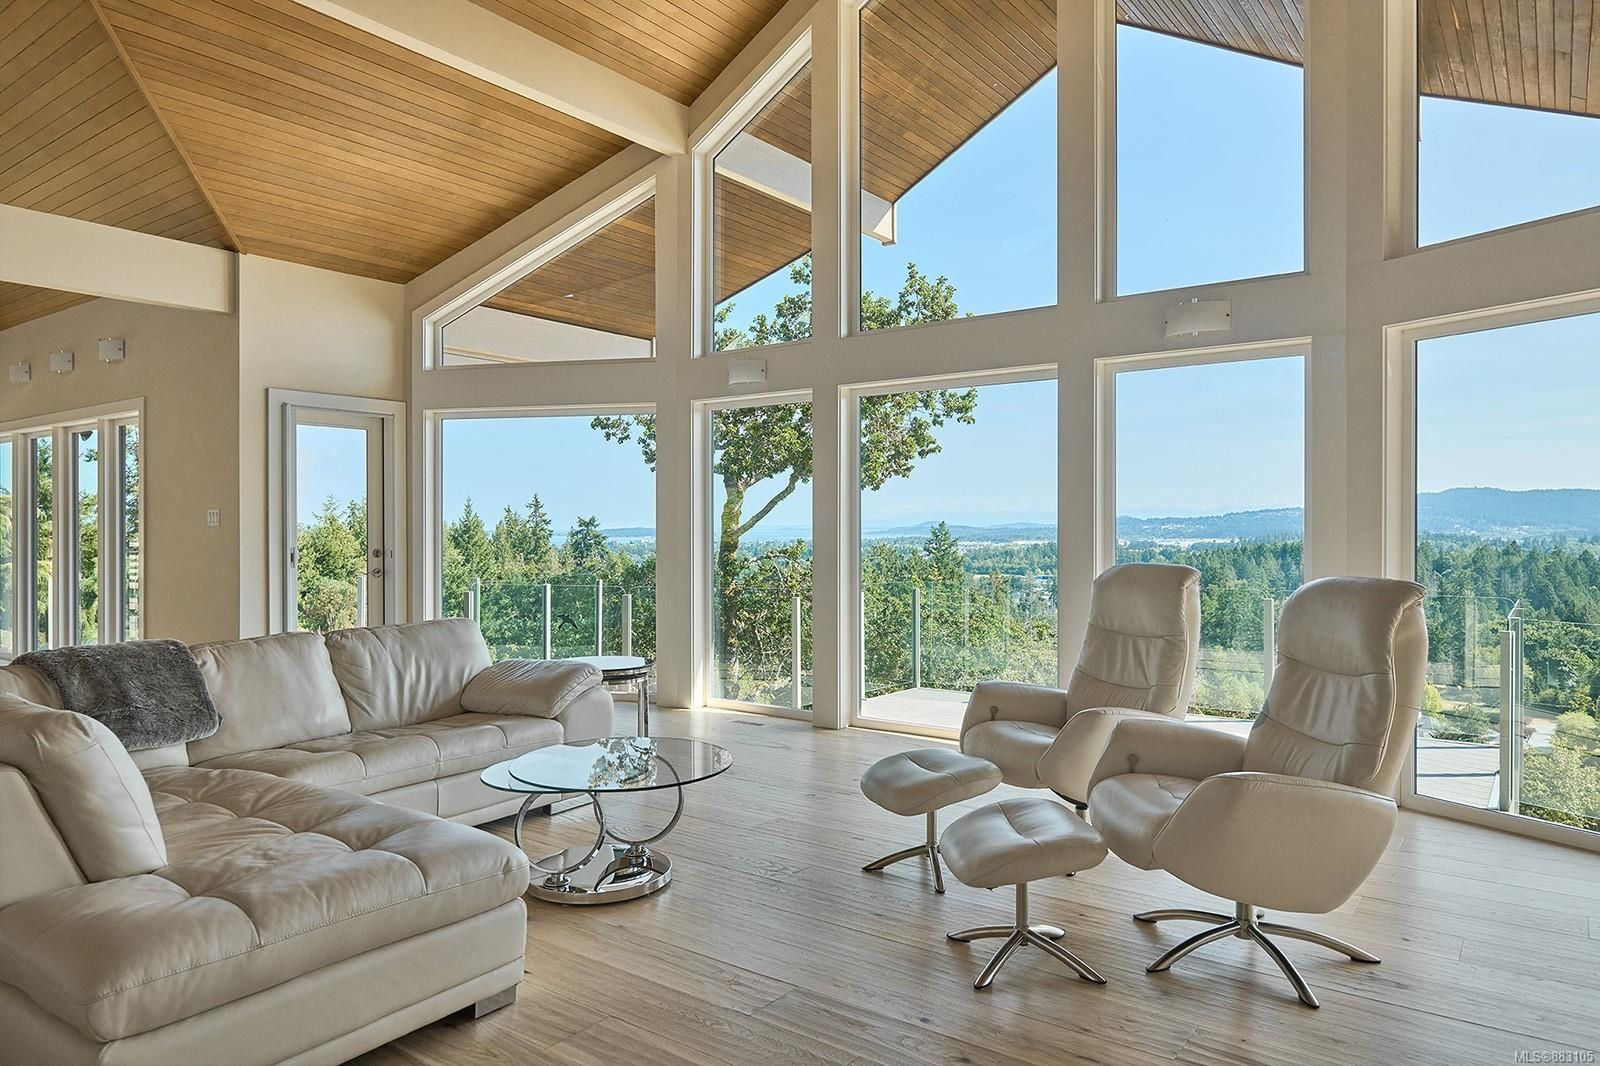 Main Photo: 10977 Greenpark Dr in : NS Swartz Bay House for sale (North Saanich)  : MLS®# 883105